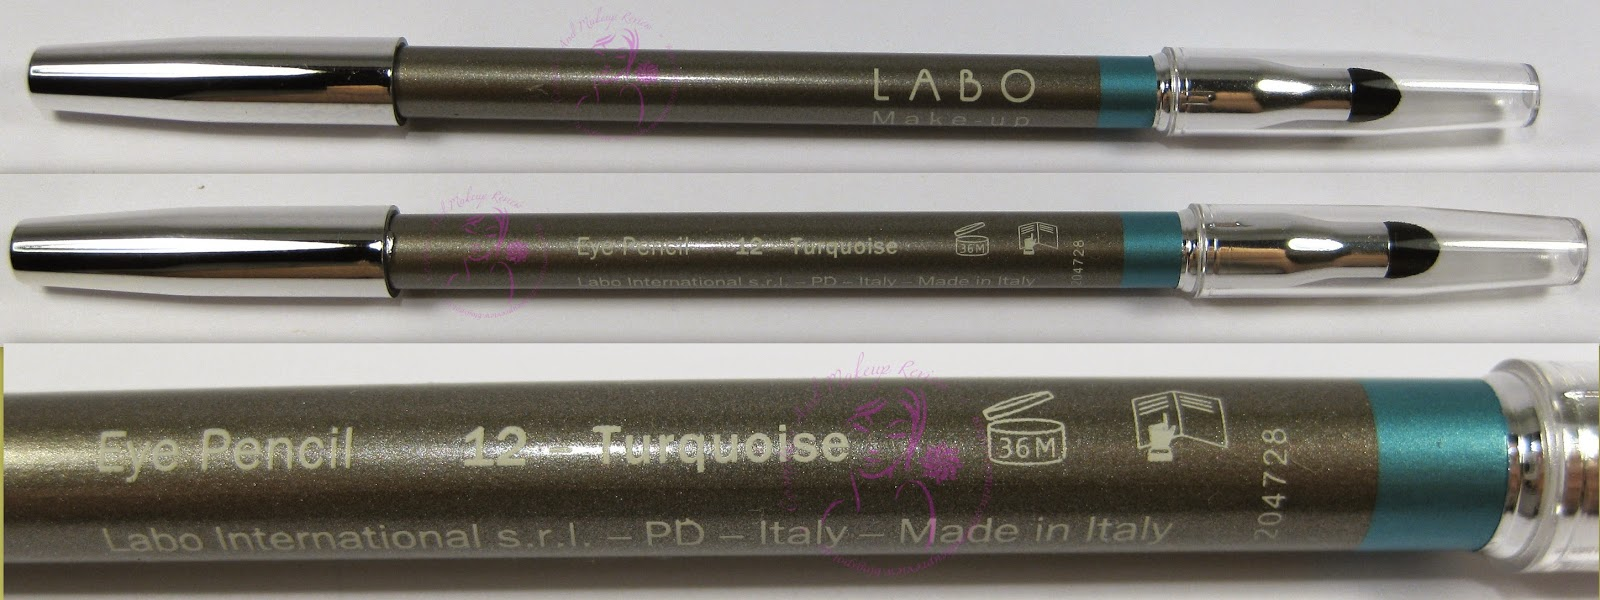 Labo Make-Up - Fashion Treatment Eye Pencil n° 12 -Turquoise/Turchese - packaging